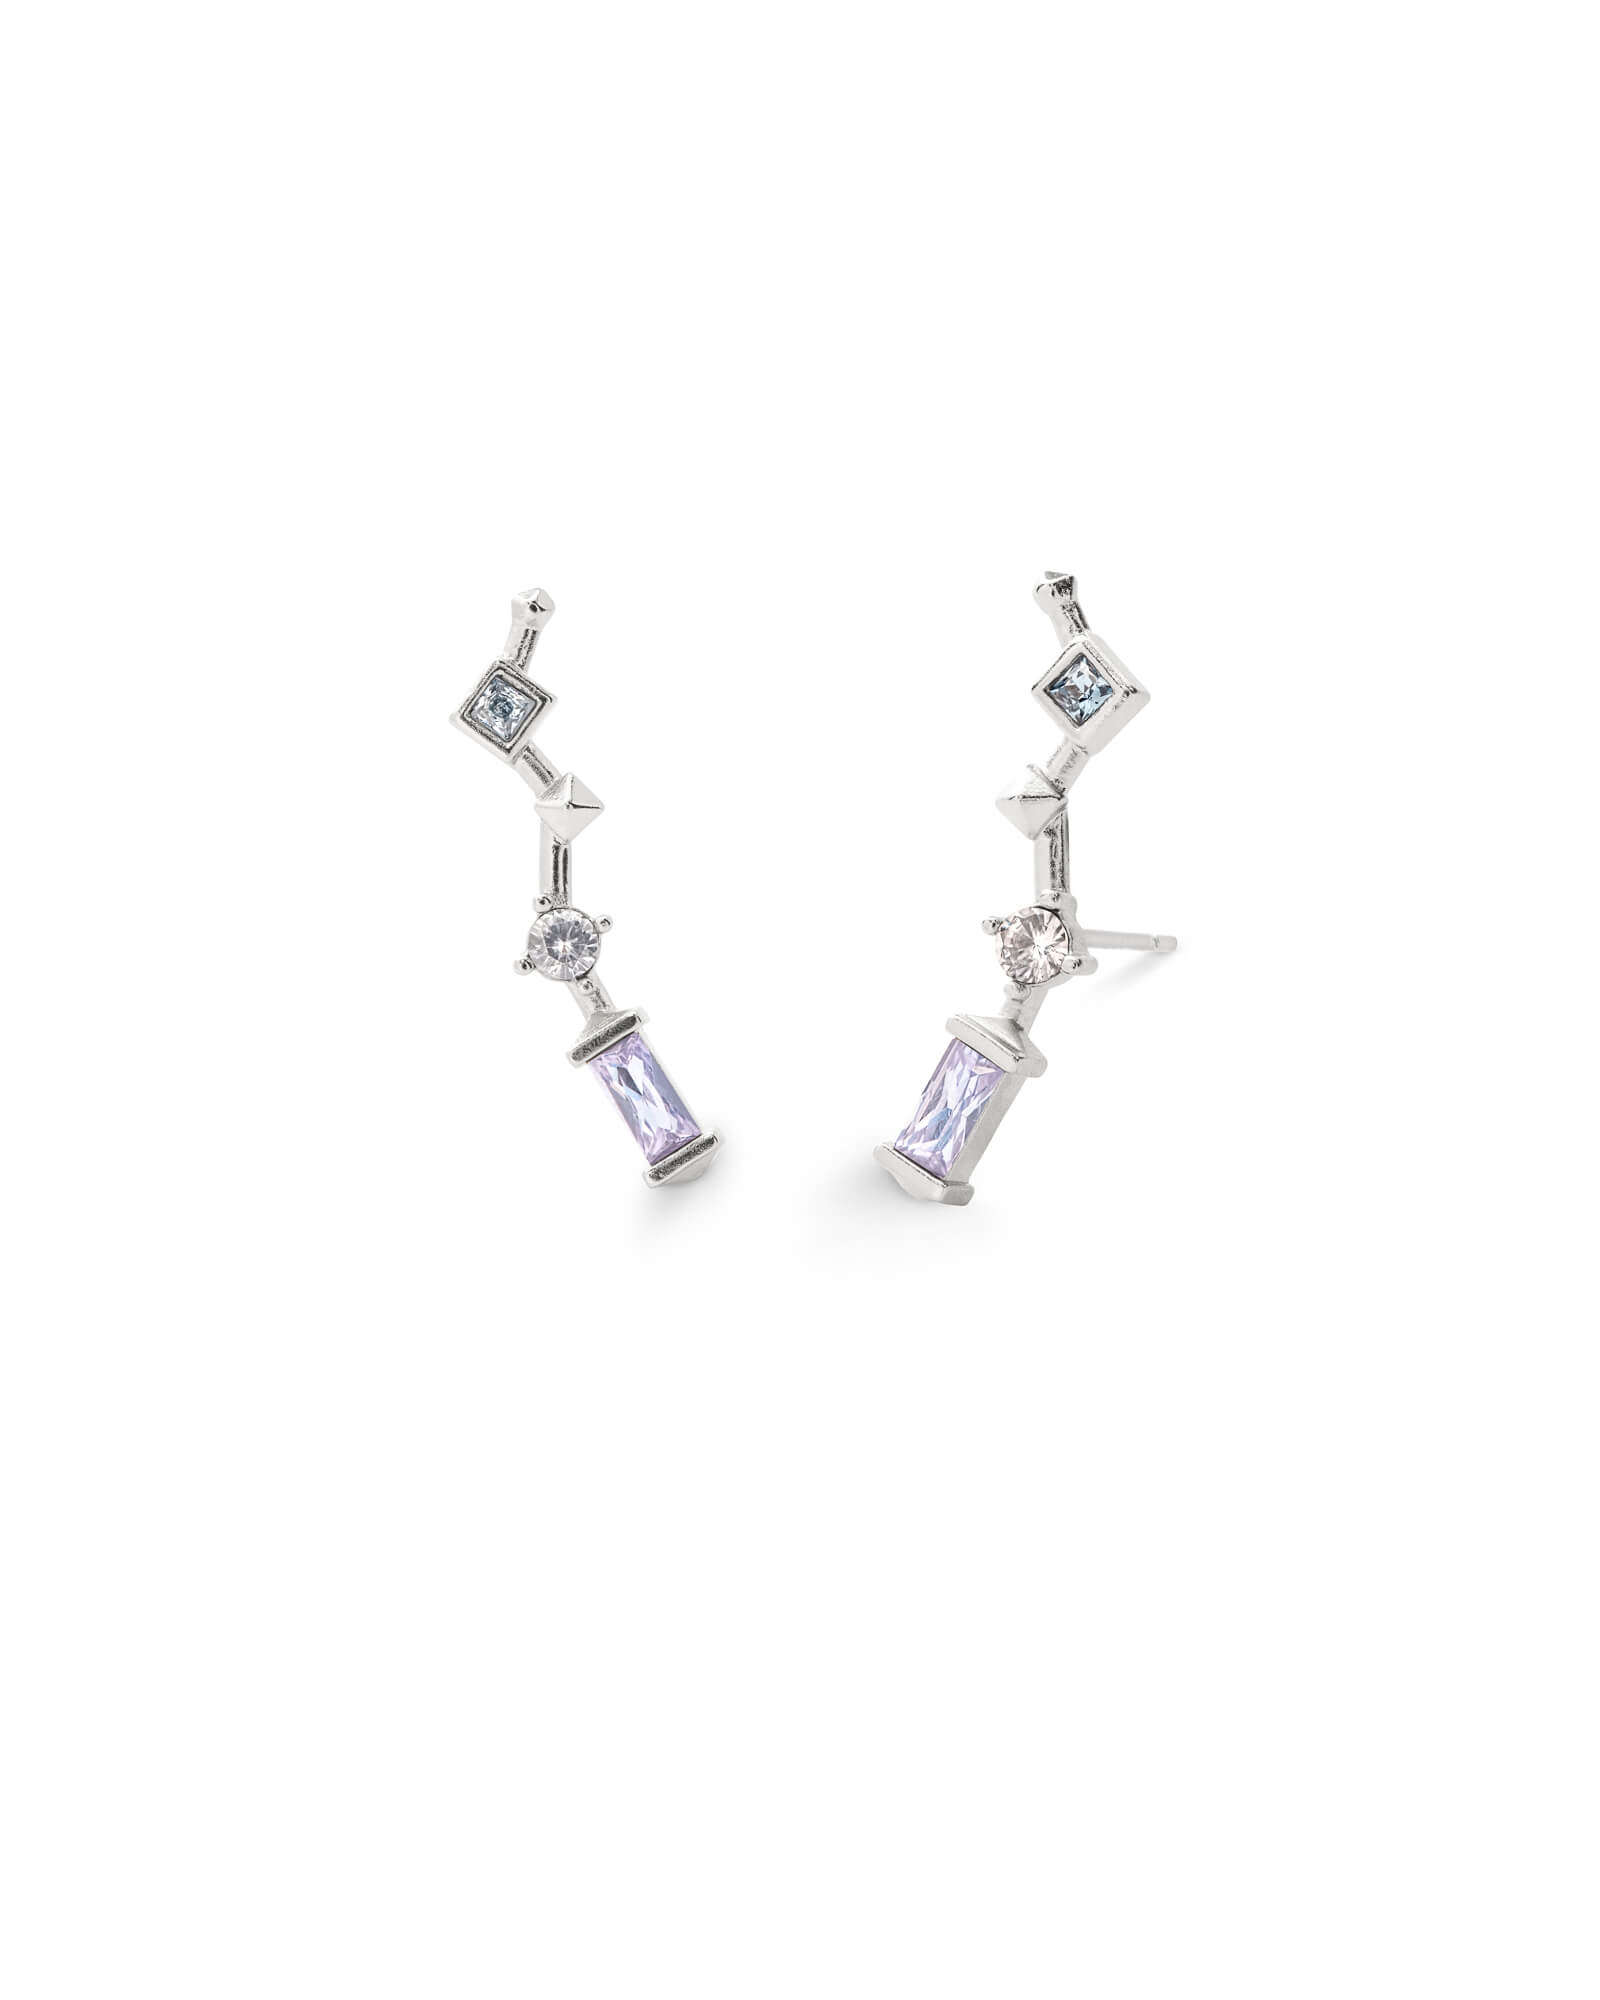 Sutton Silver Ear Climbers in Lilac Mix